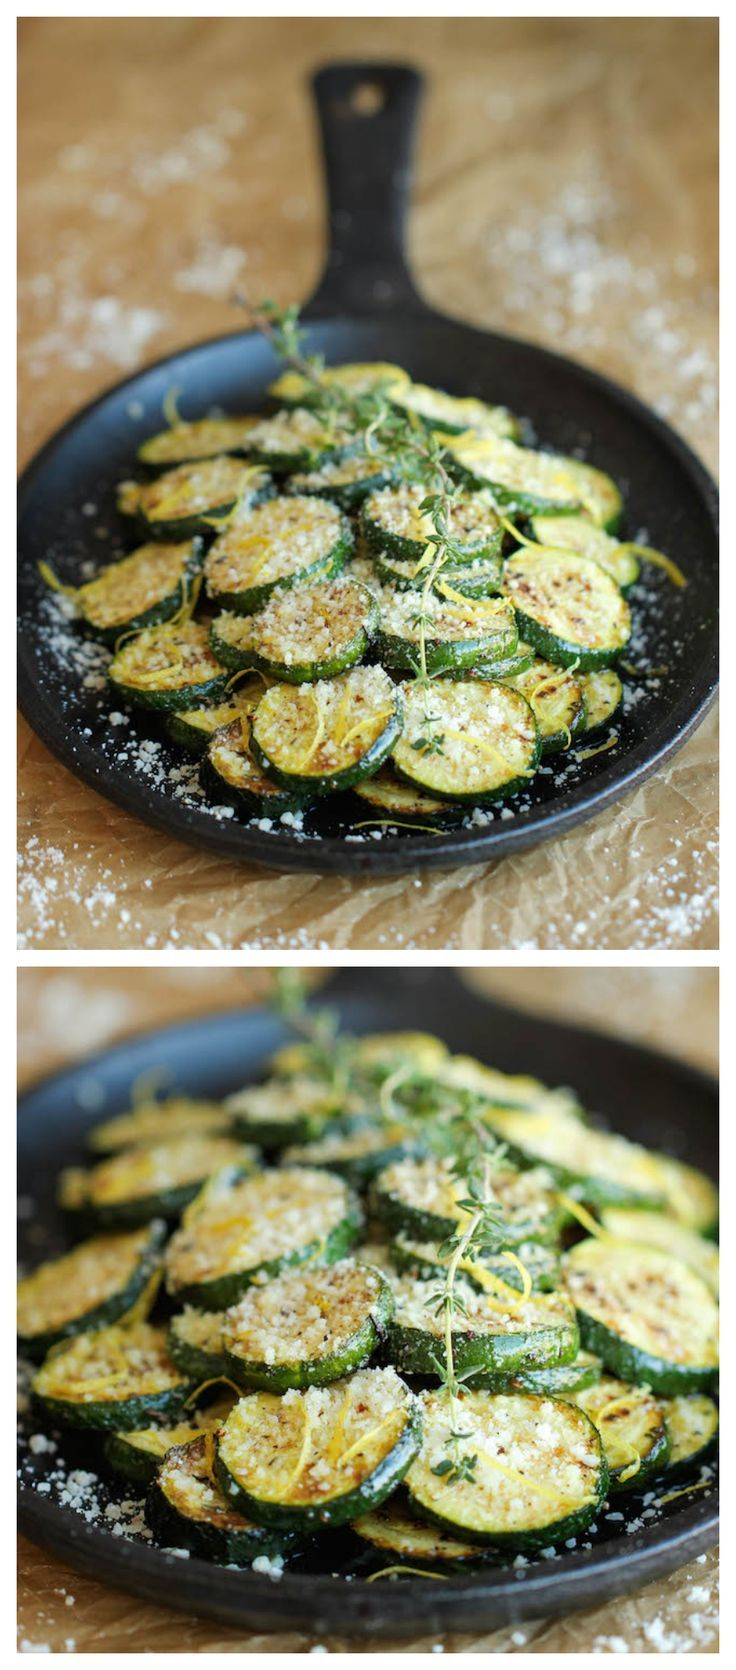 Parmesan Lemon Zucchini - The most amazing zucchini dish made in just 10 min. It's so easy, you'll want to make this every single night! Veganize!